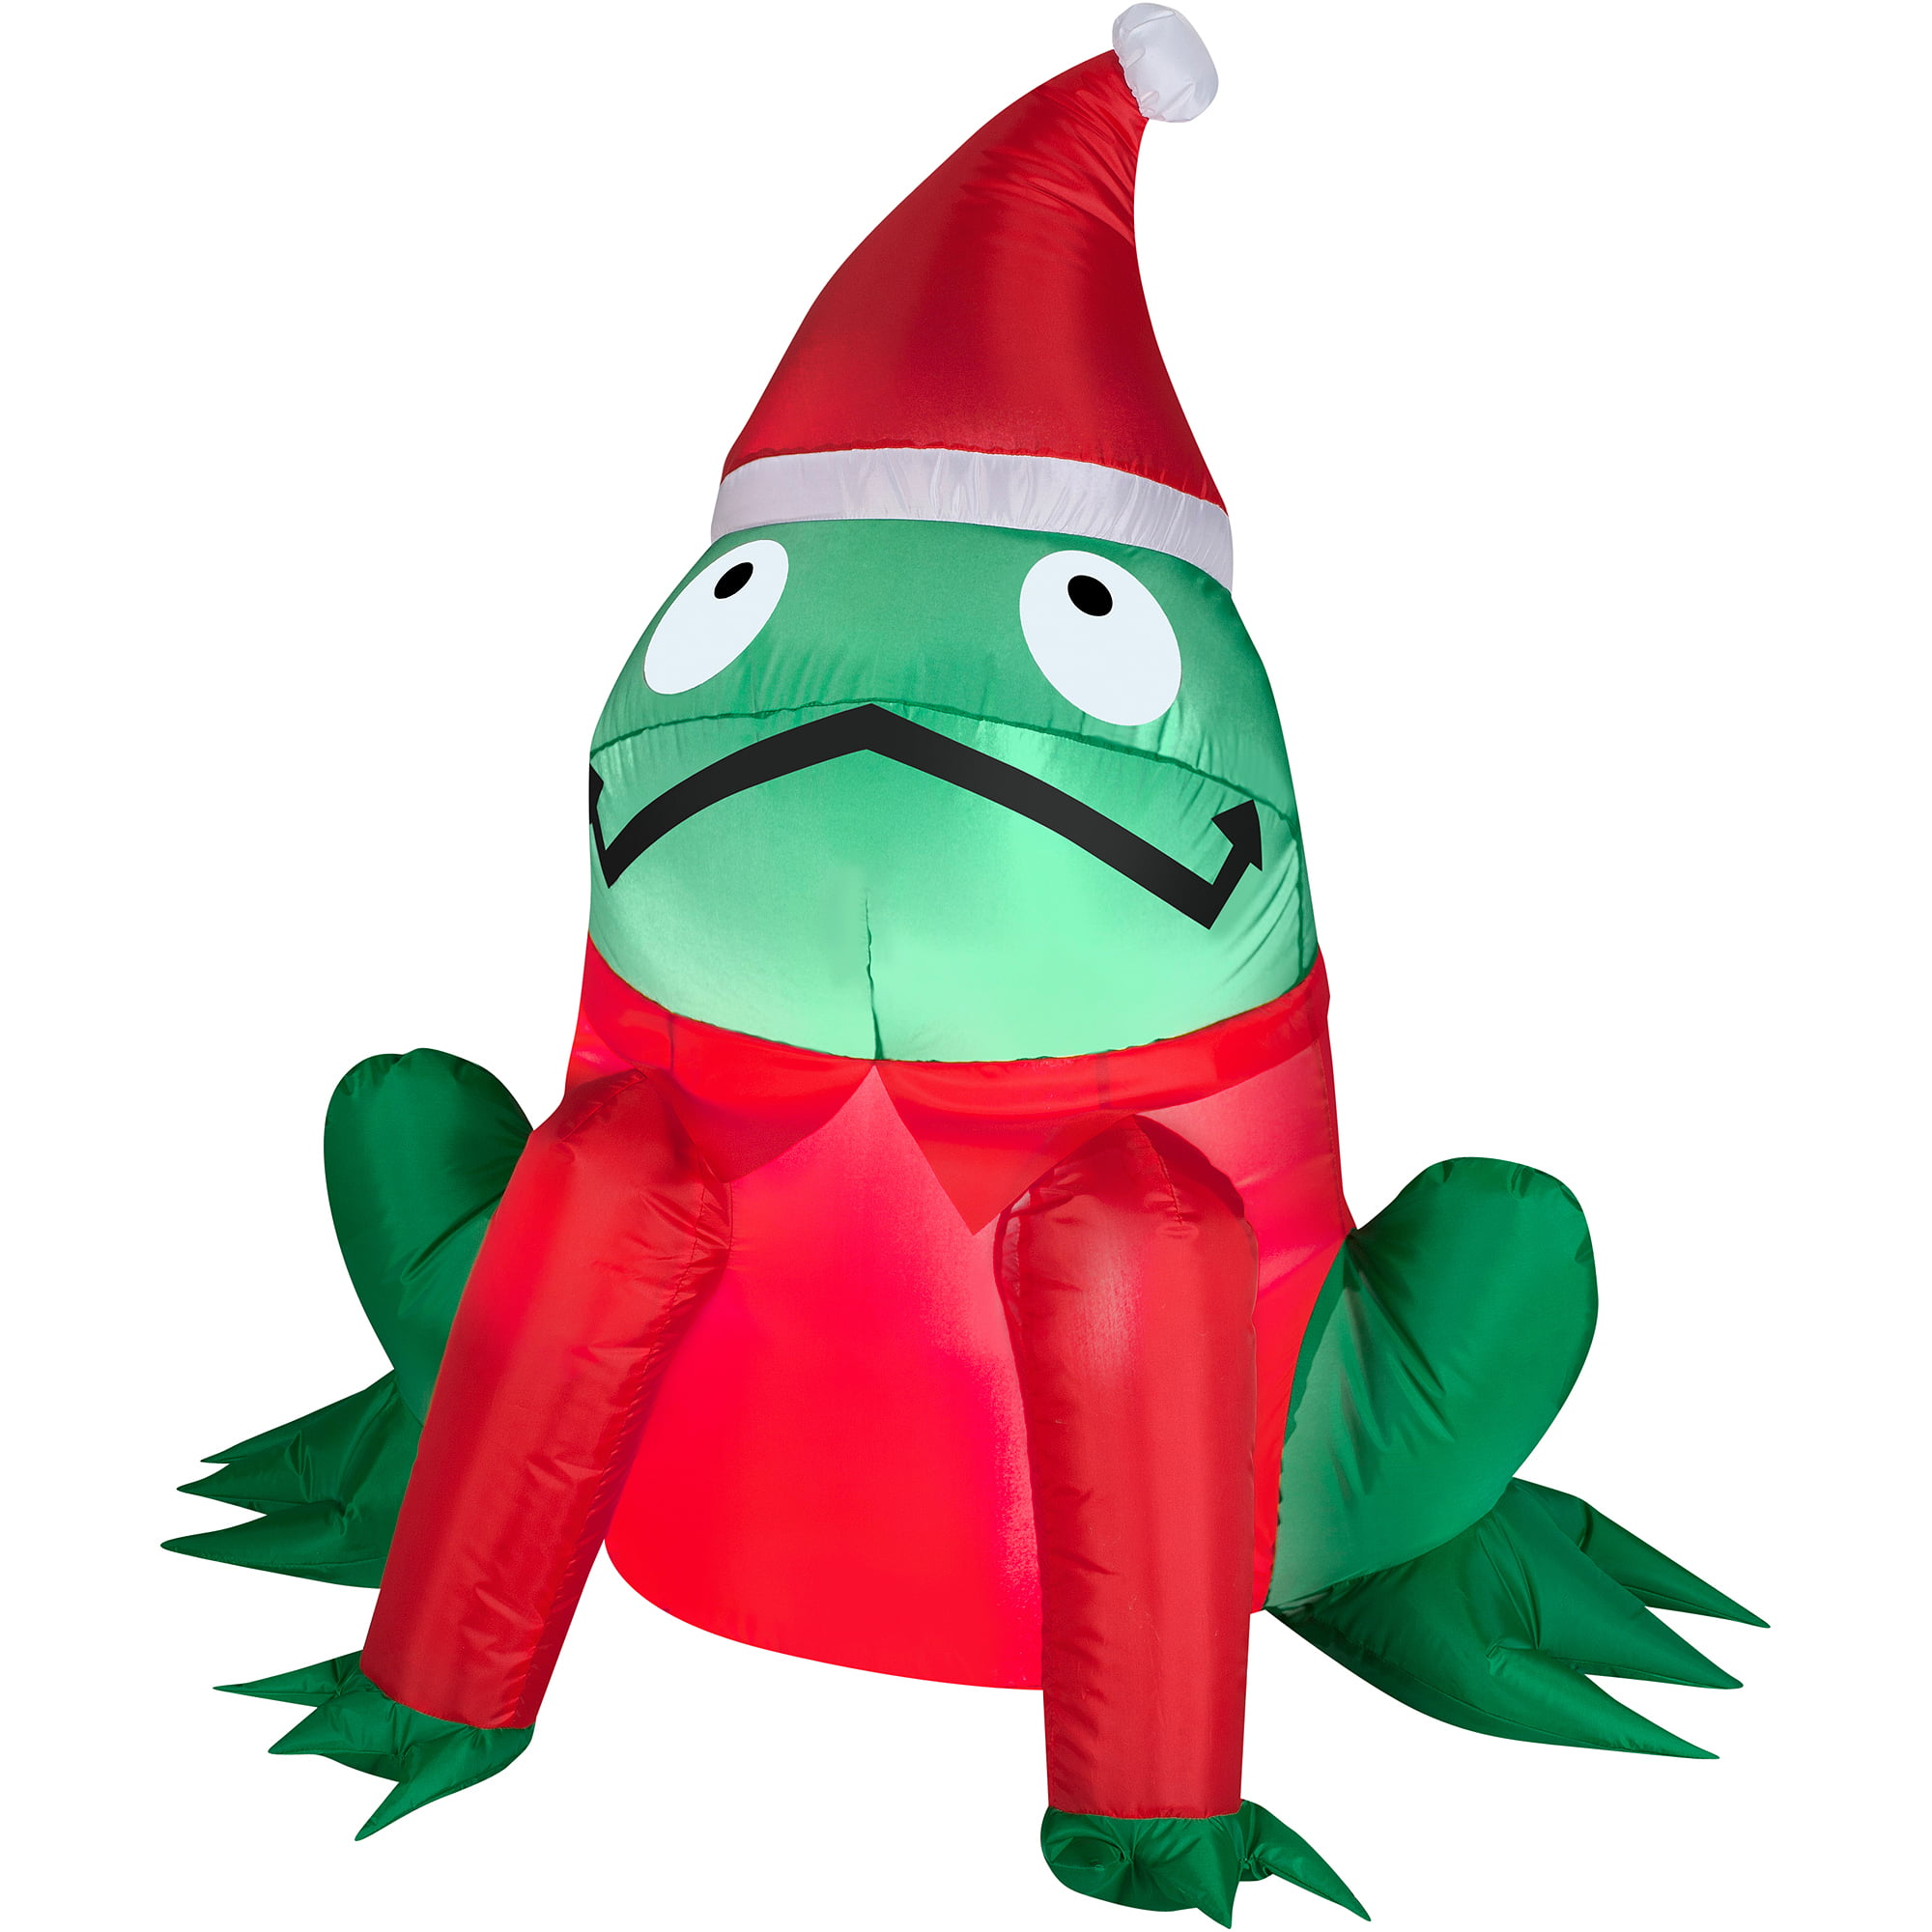 airblown inflatable 3 frog christmas prop walmartcom - Walmart Inflatable Christmas Decorations